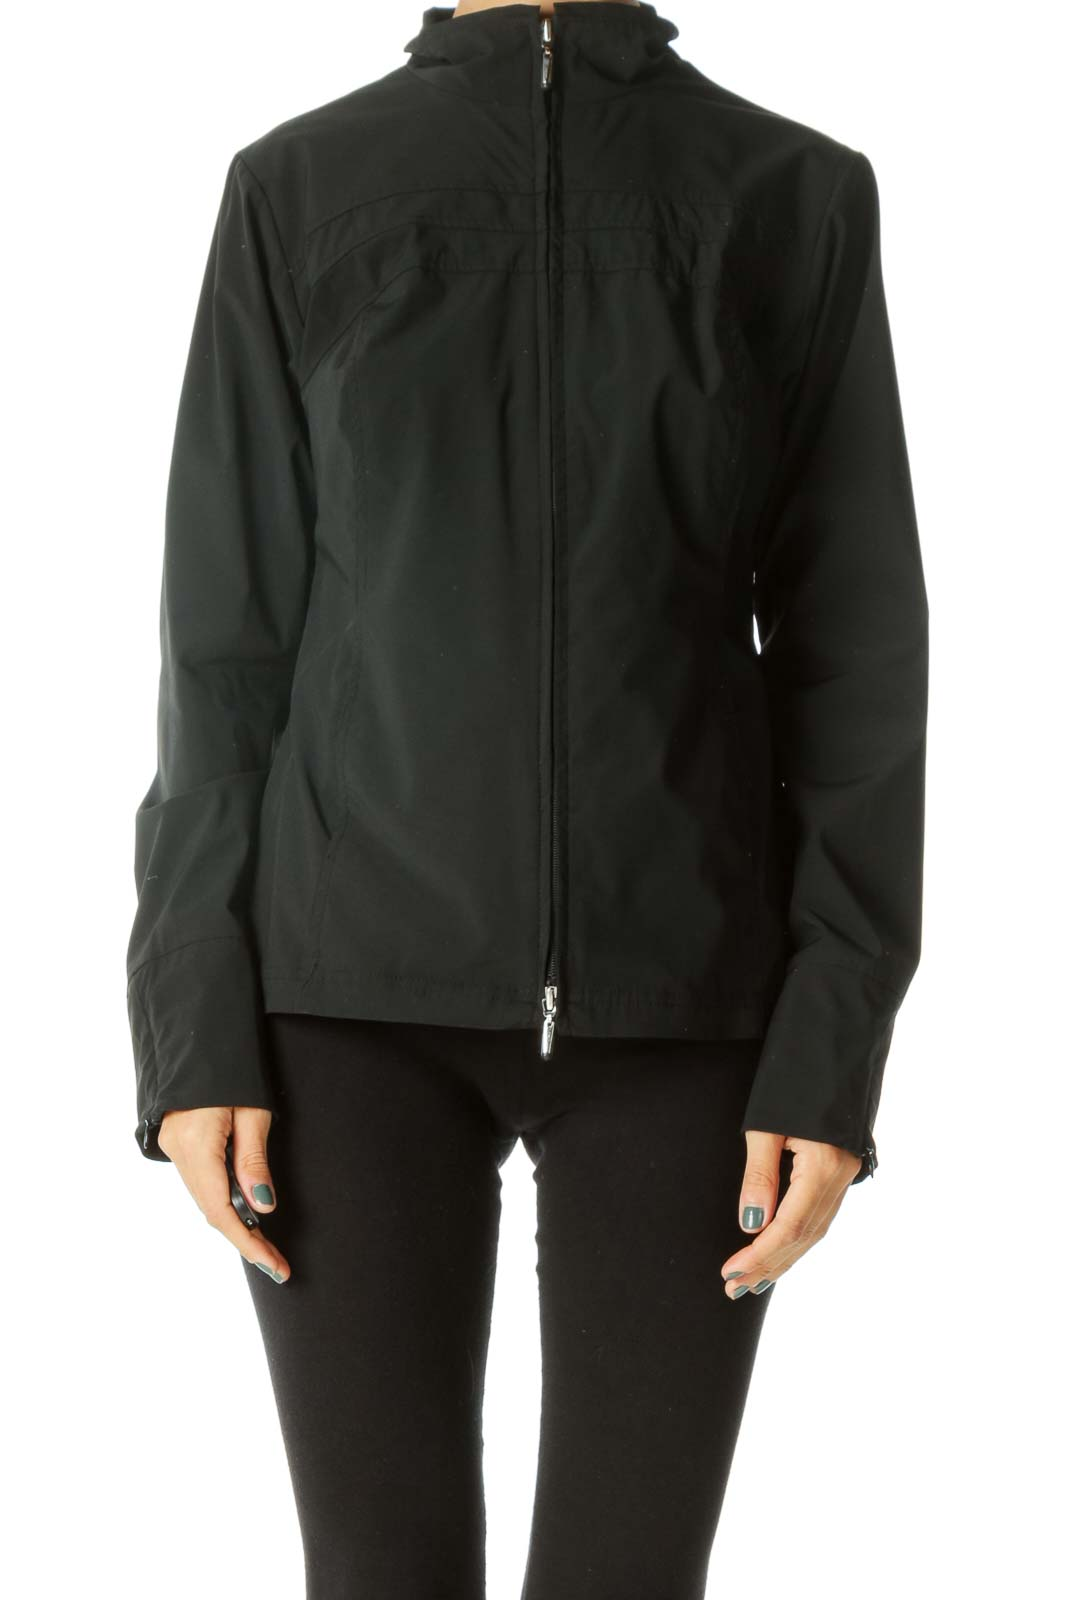 Black Zippered Sleeve Detail Pocketed Stretch Sport Jacket Front